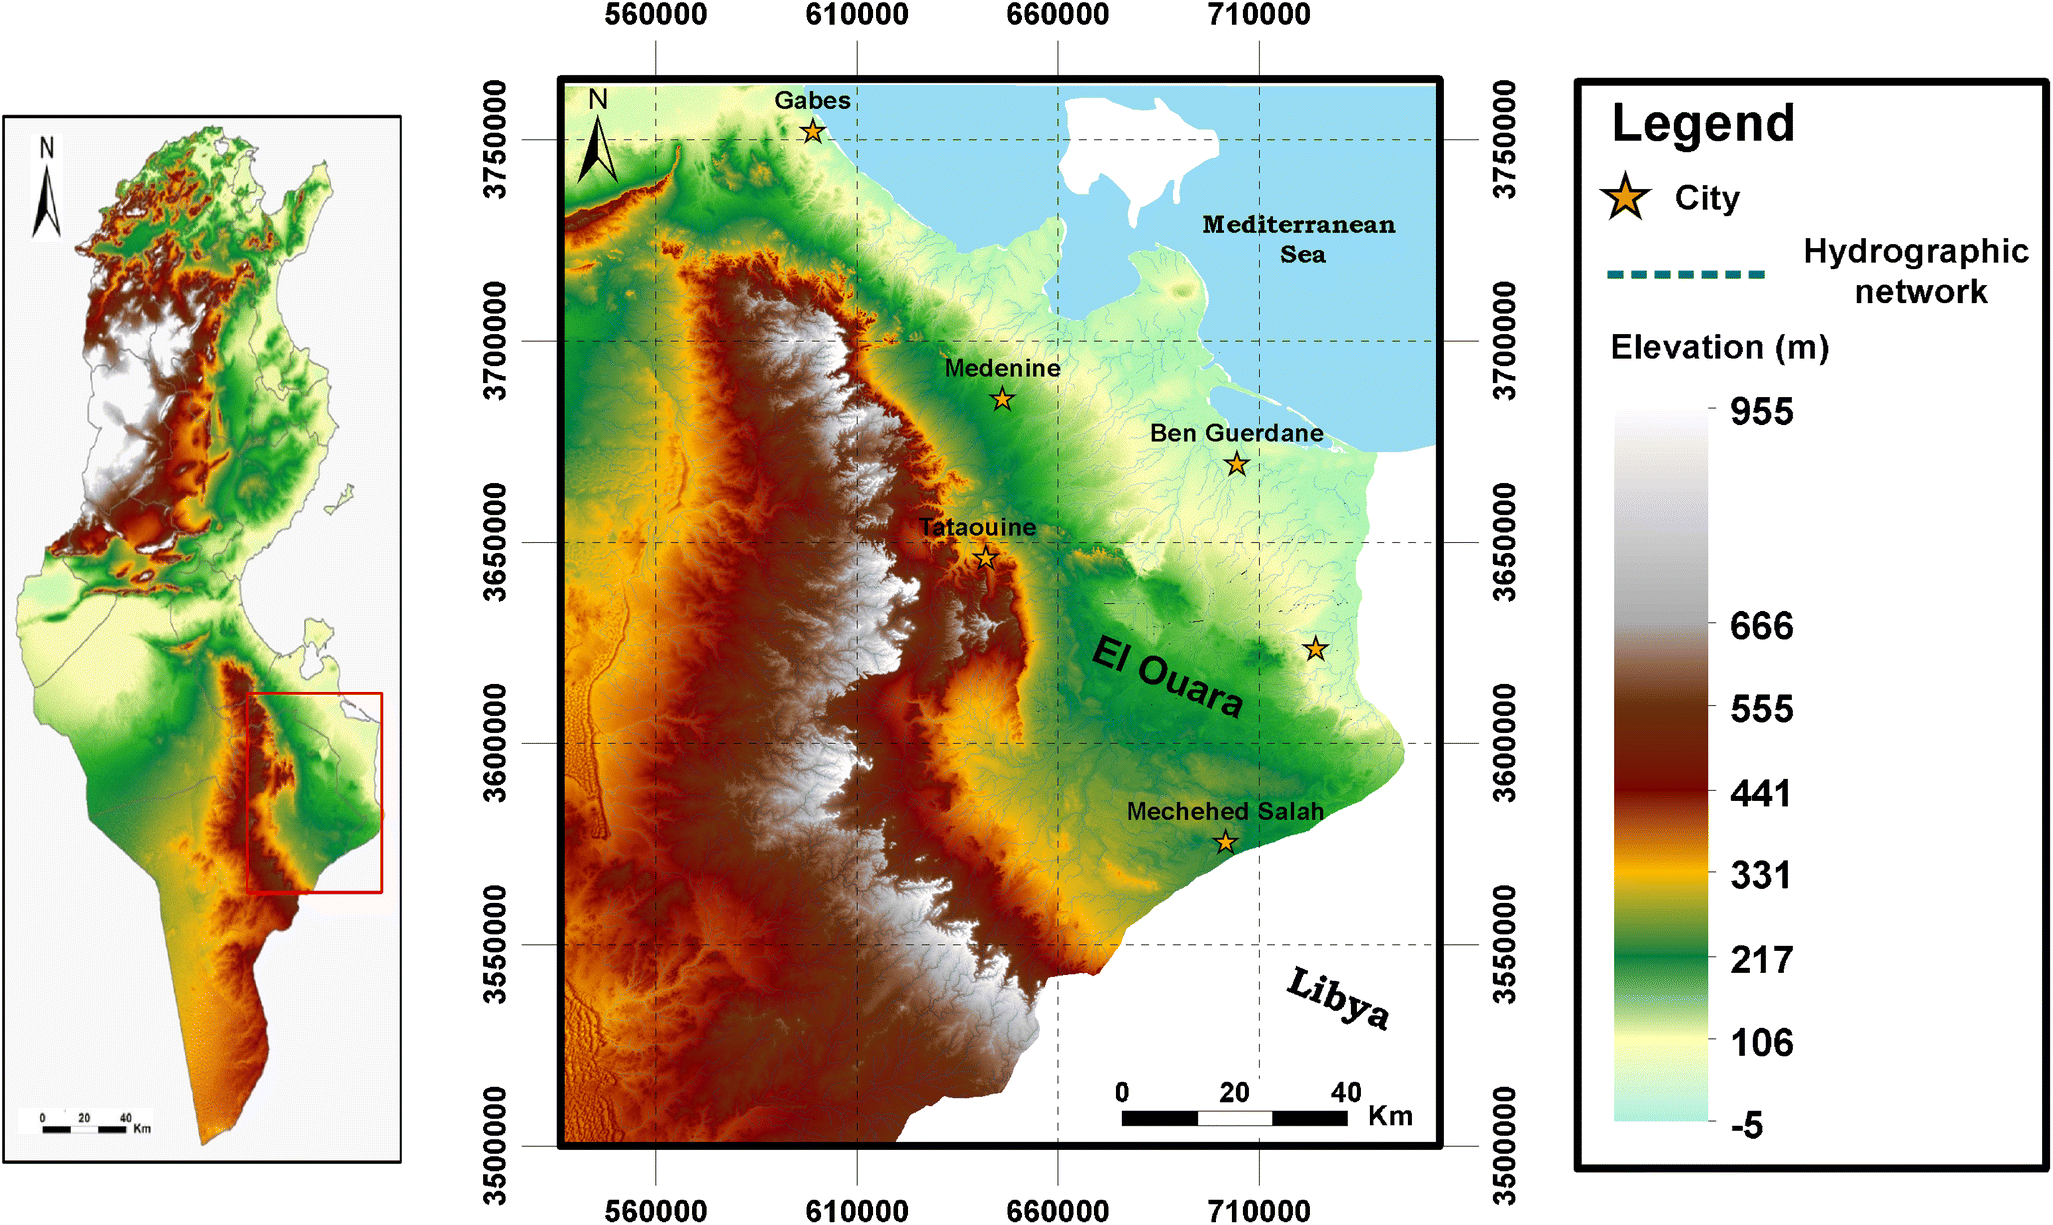 Assessment of groundwater quality of El Ouara aquifer (southeastern